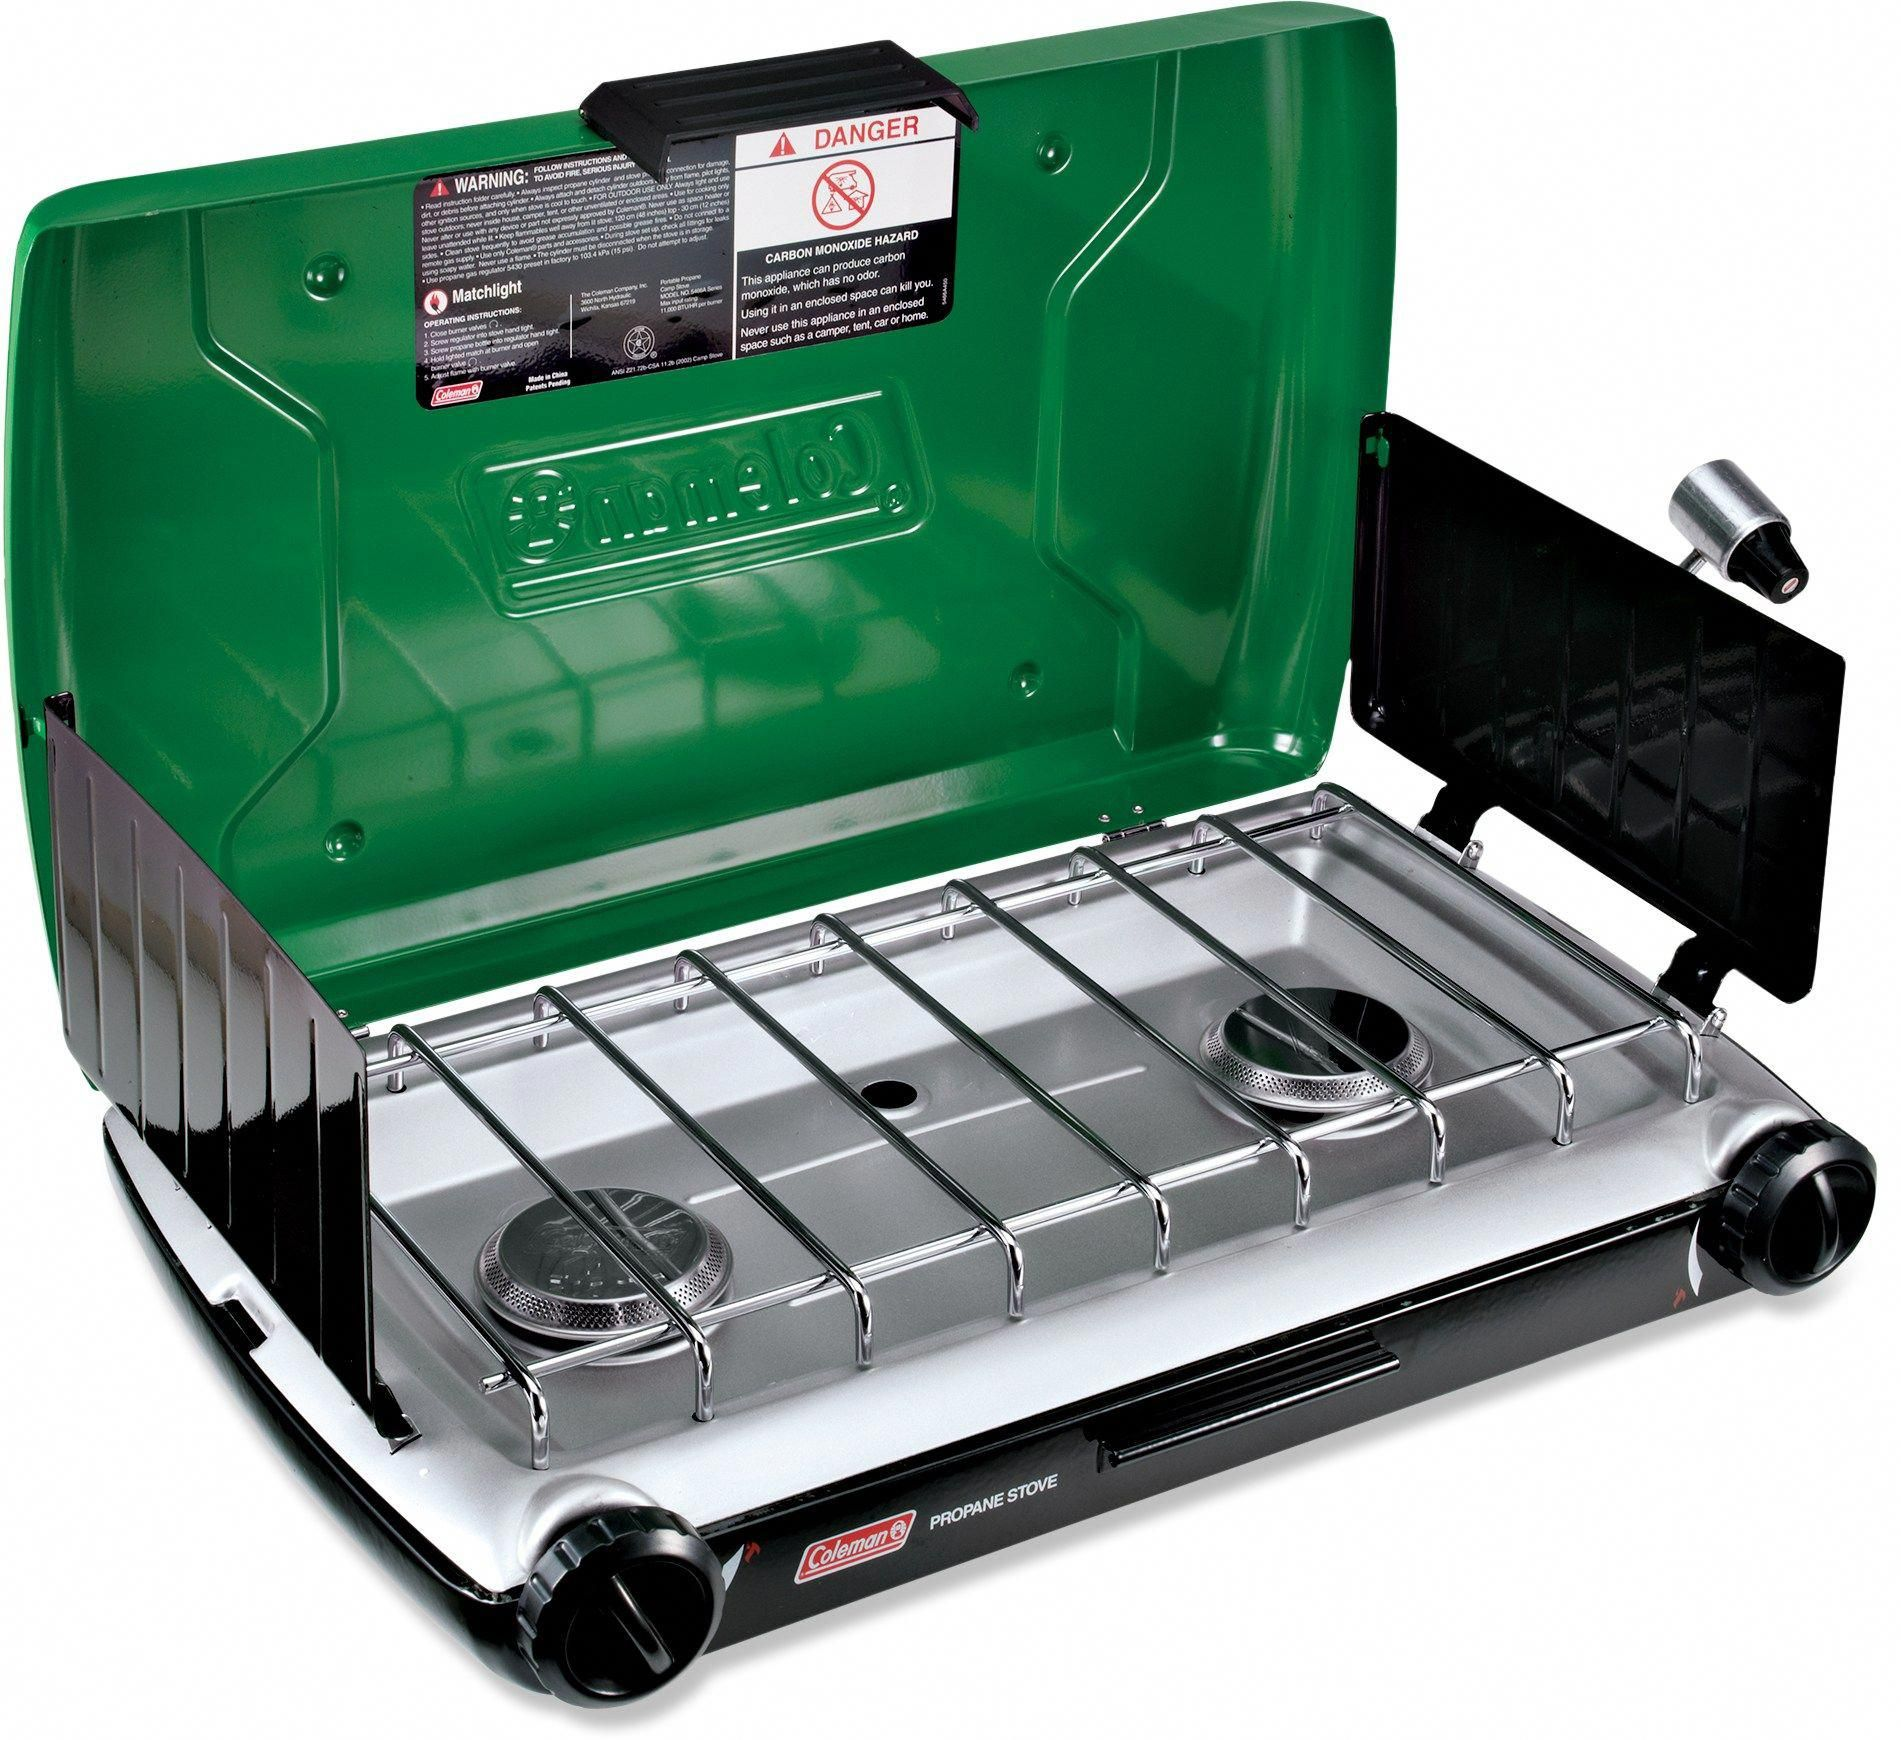 coleman 2-burner stove - free shipping at rei